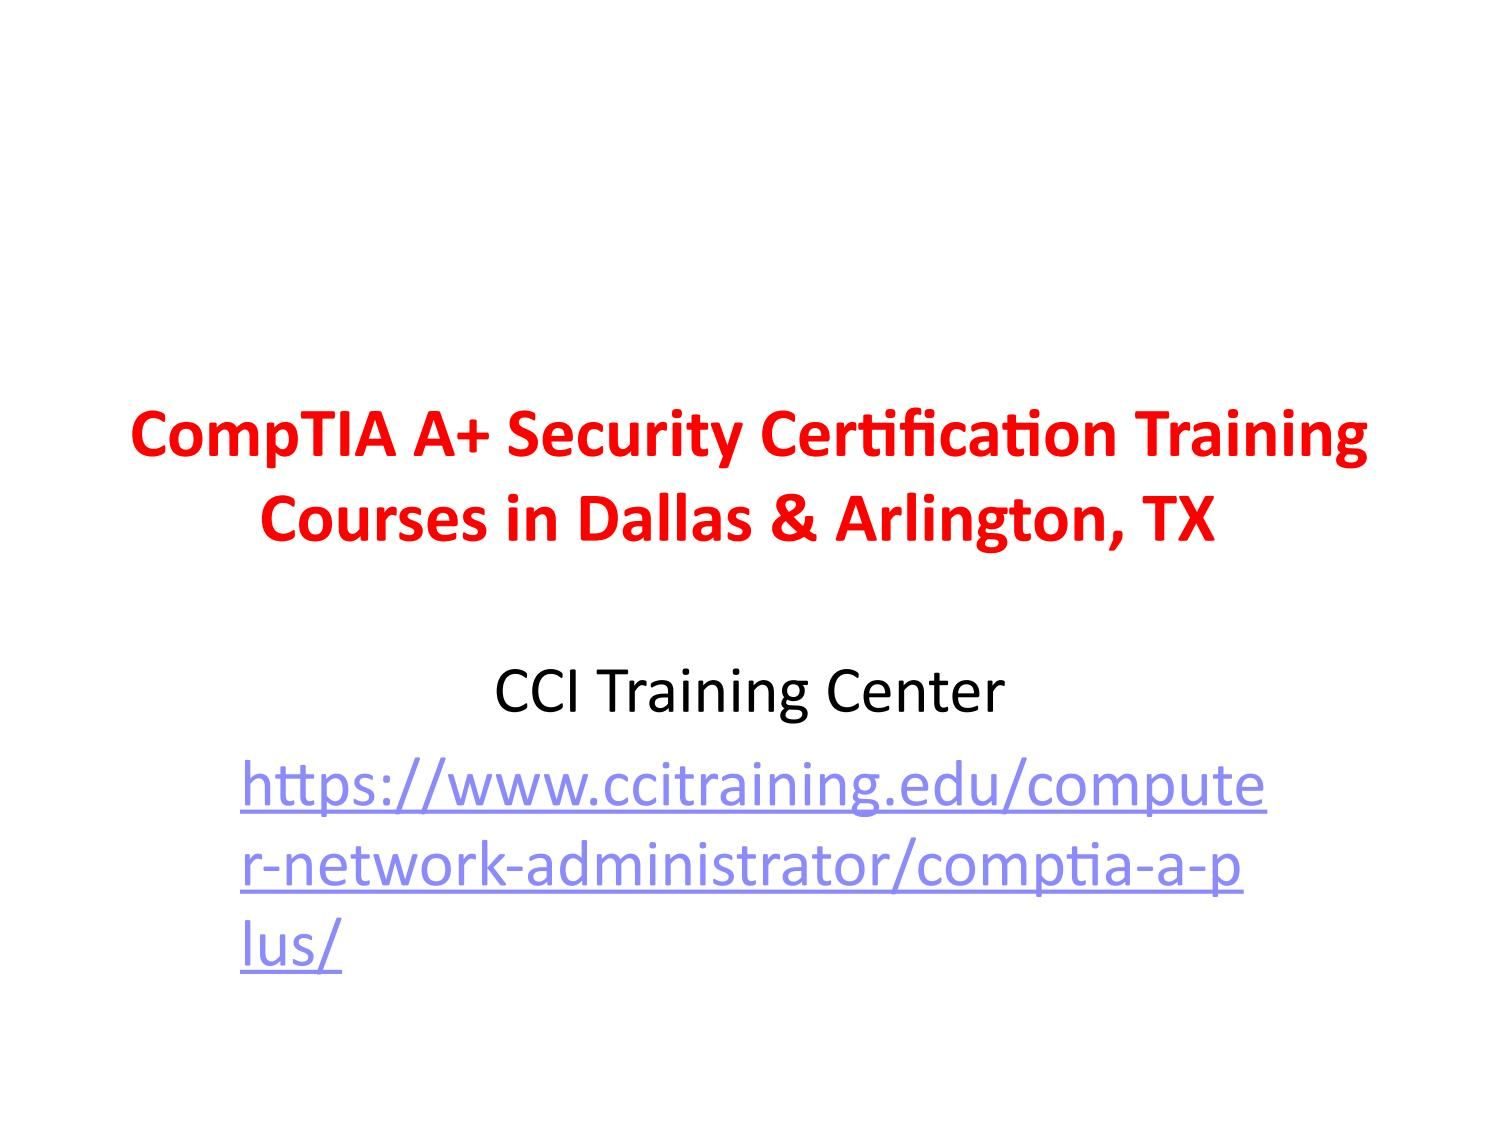 CompTIA A+ Security Certification Training Courses in